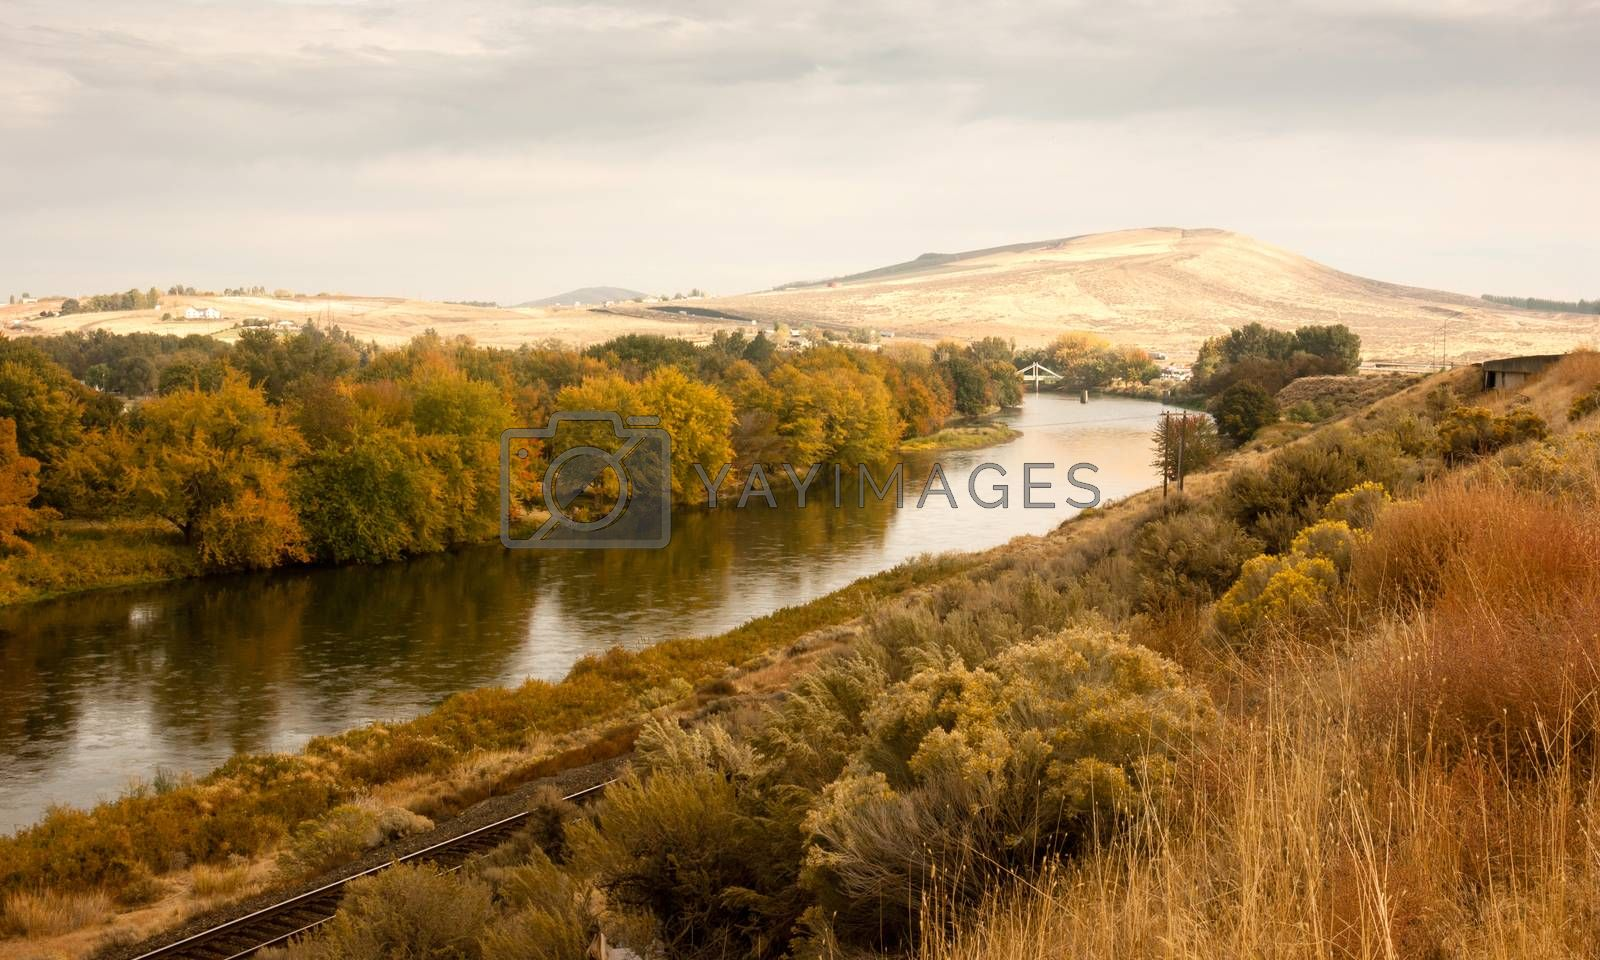 Royalty free image of Storm Clearing Over Agricultural Land Yakima River Central Washington by ChrisBoswell